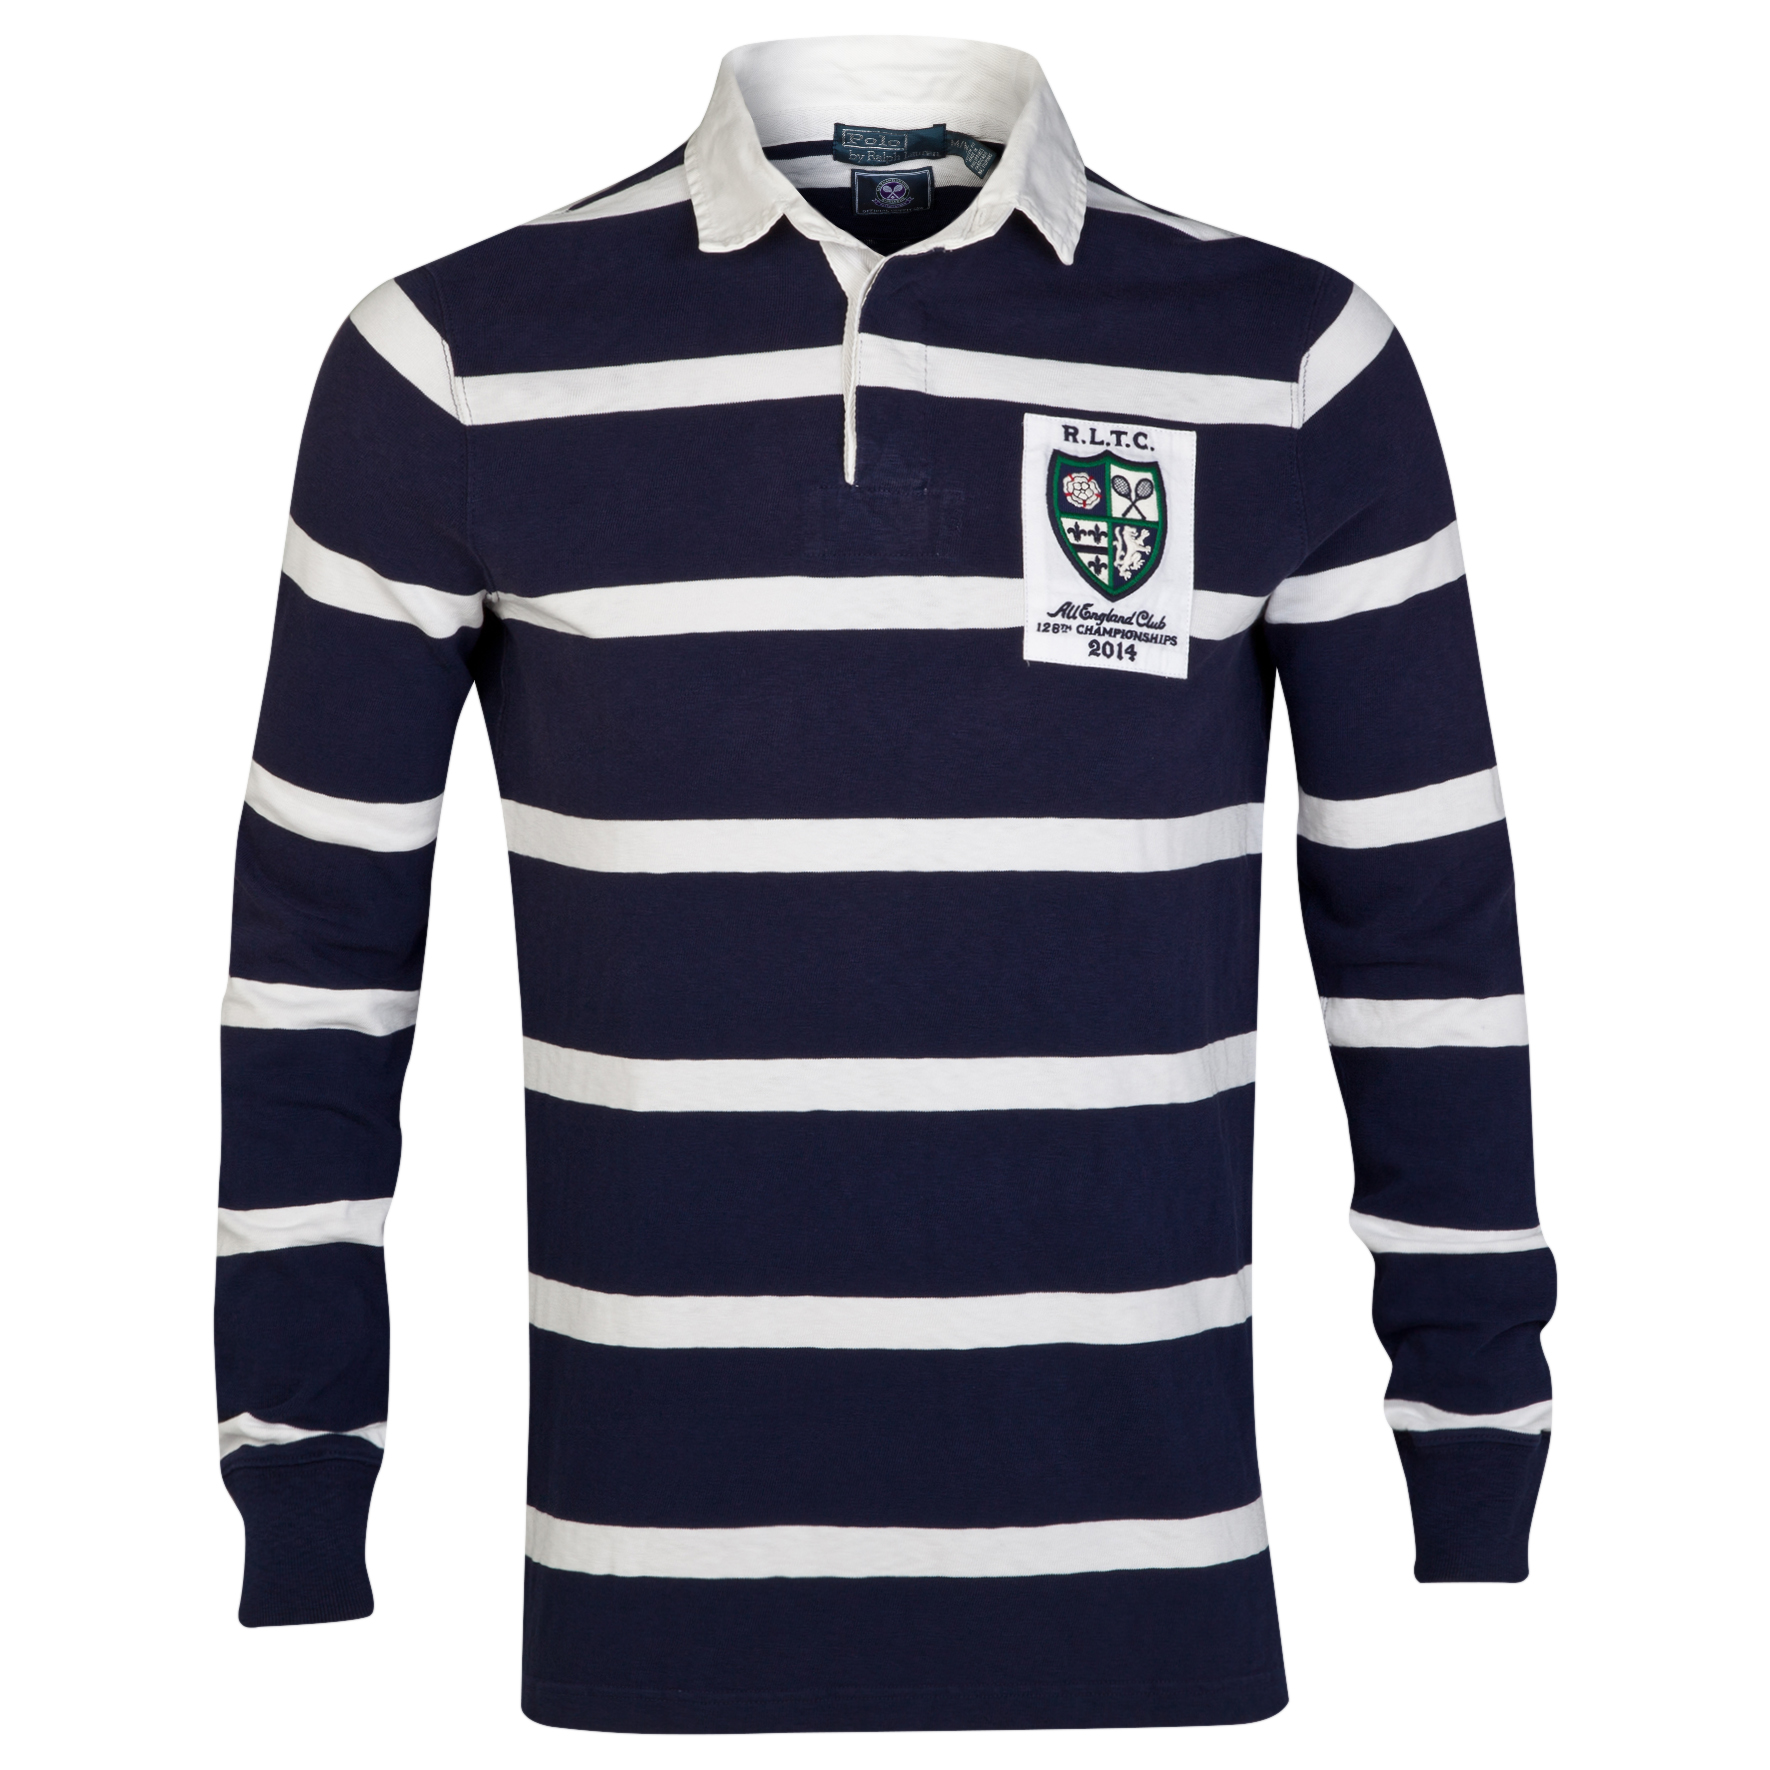 Wimbledon Polo Ralph Lauren Antique Rubgy Jersey - French Navy/Deckwash White